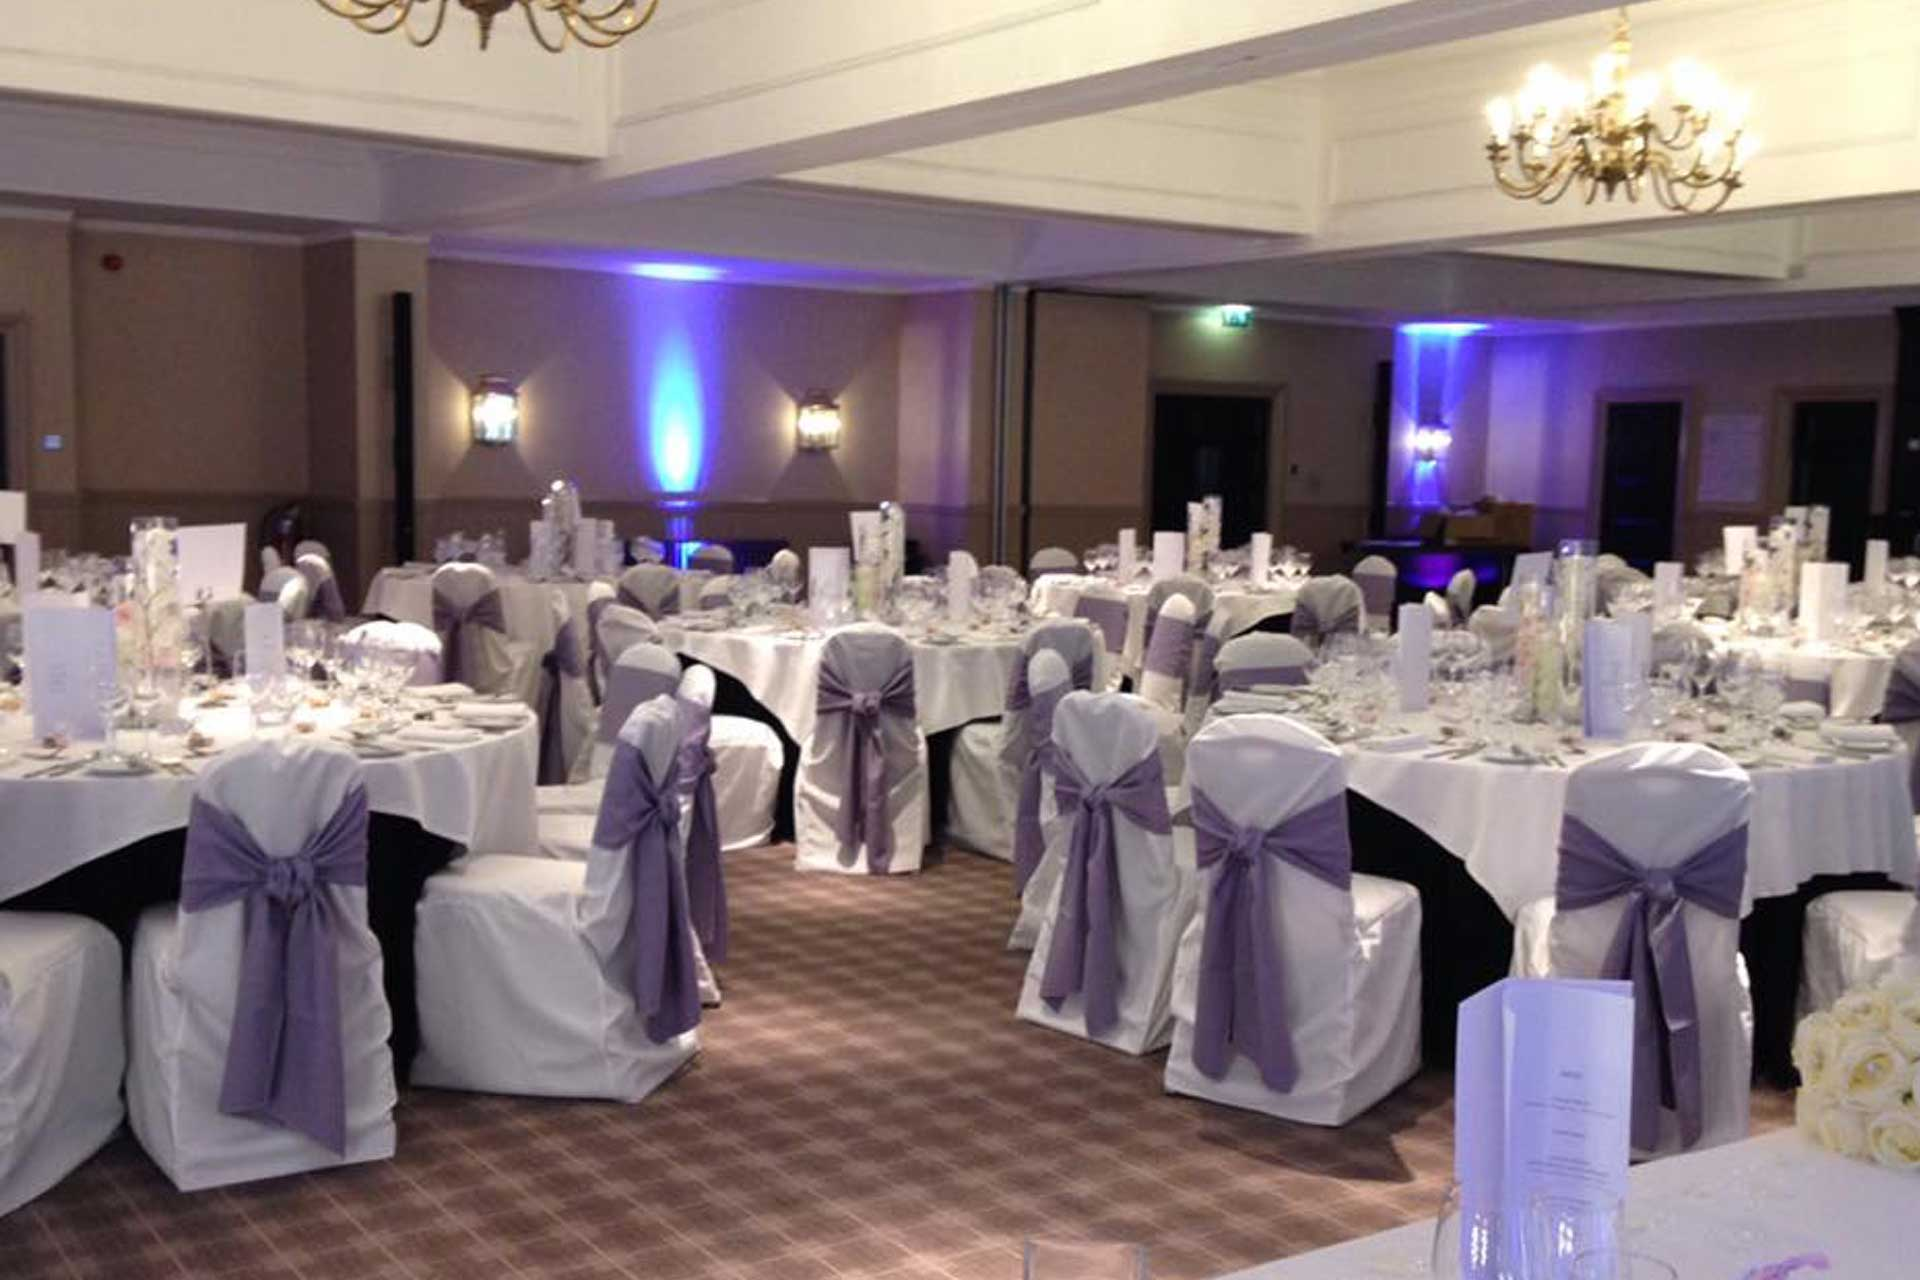 Chair Covers and Bows for a Wedding Package that included one of our Photo Booths and an LED Dance Floor